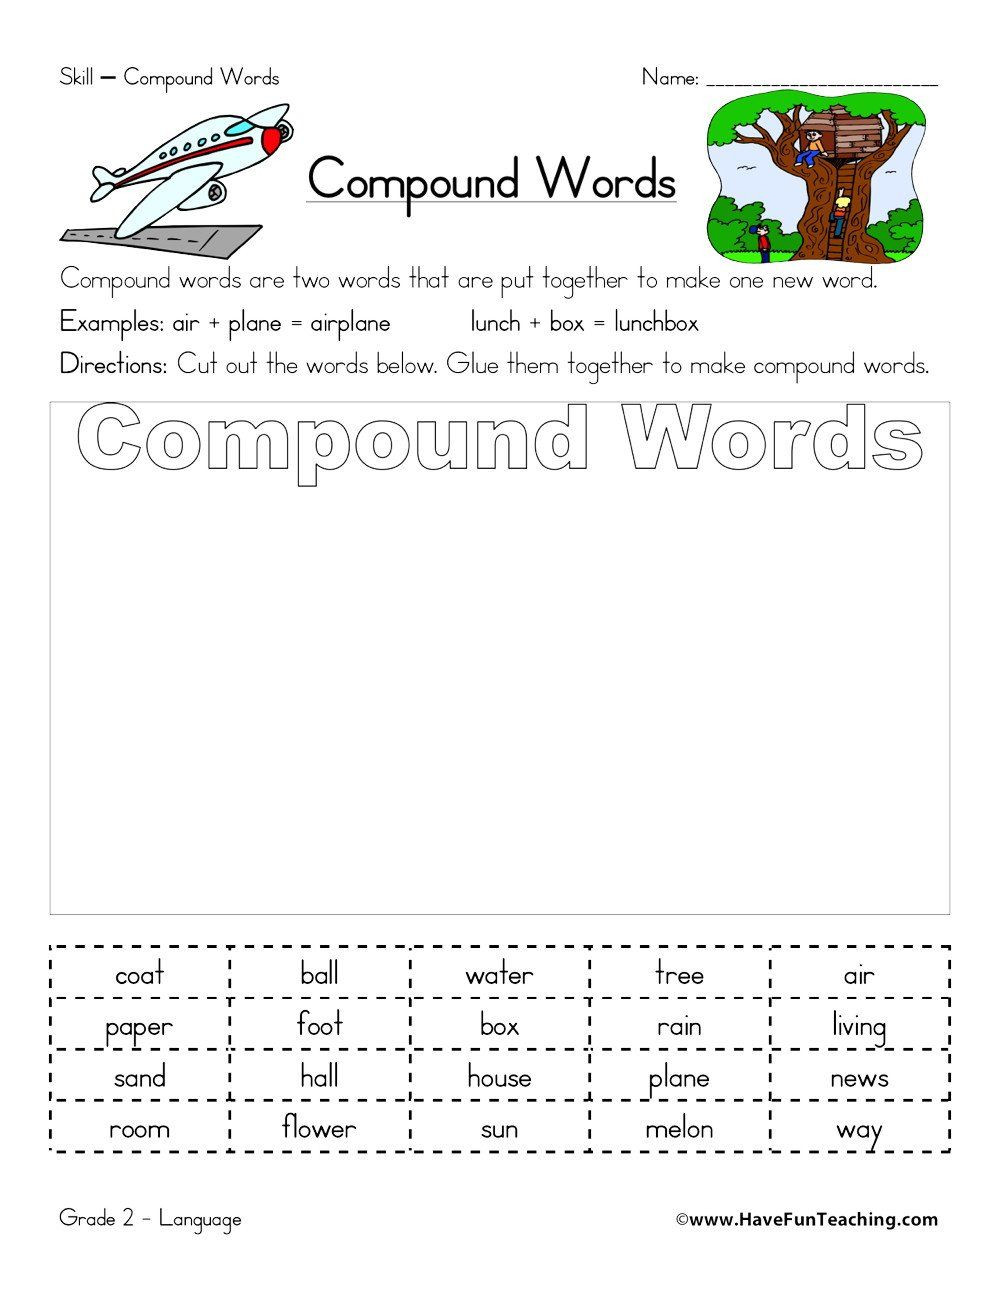 Compound Words Worksheets 1st Grade Pin On Grade Worksheets & Sample Printables